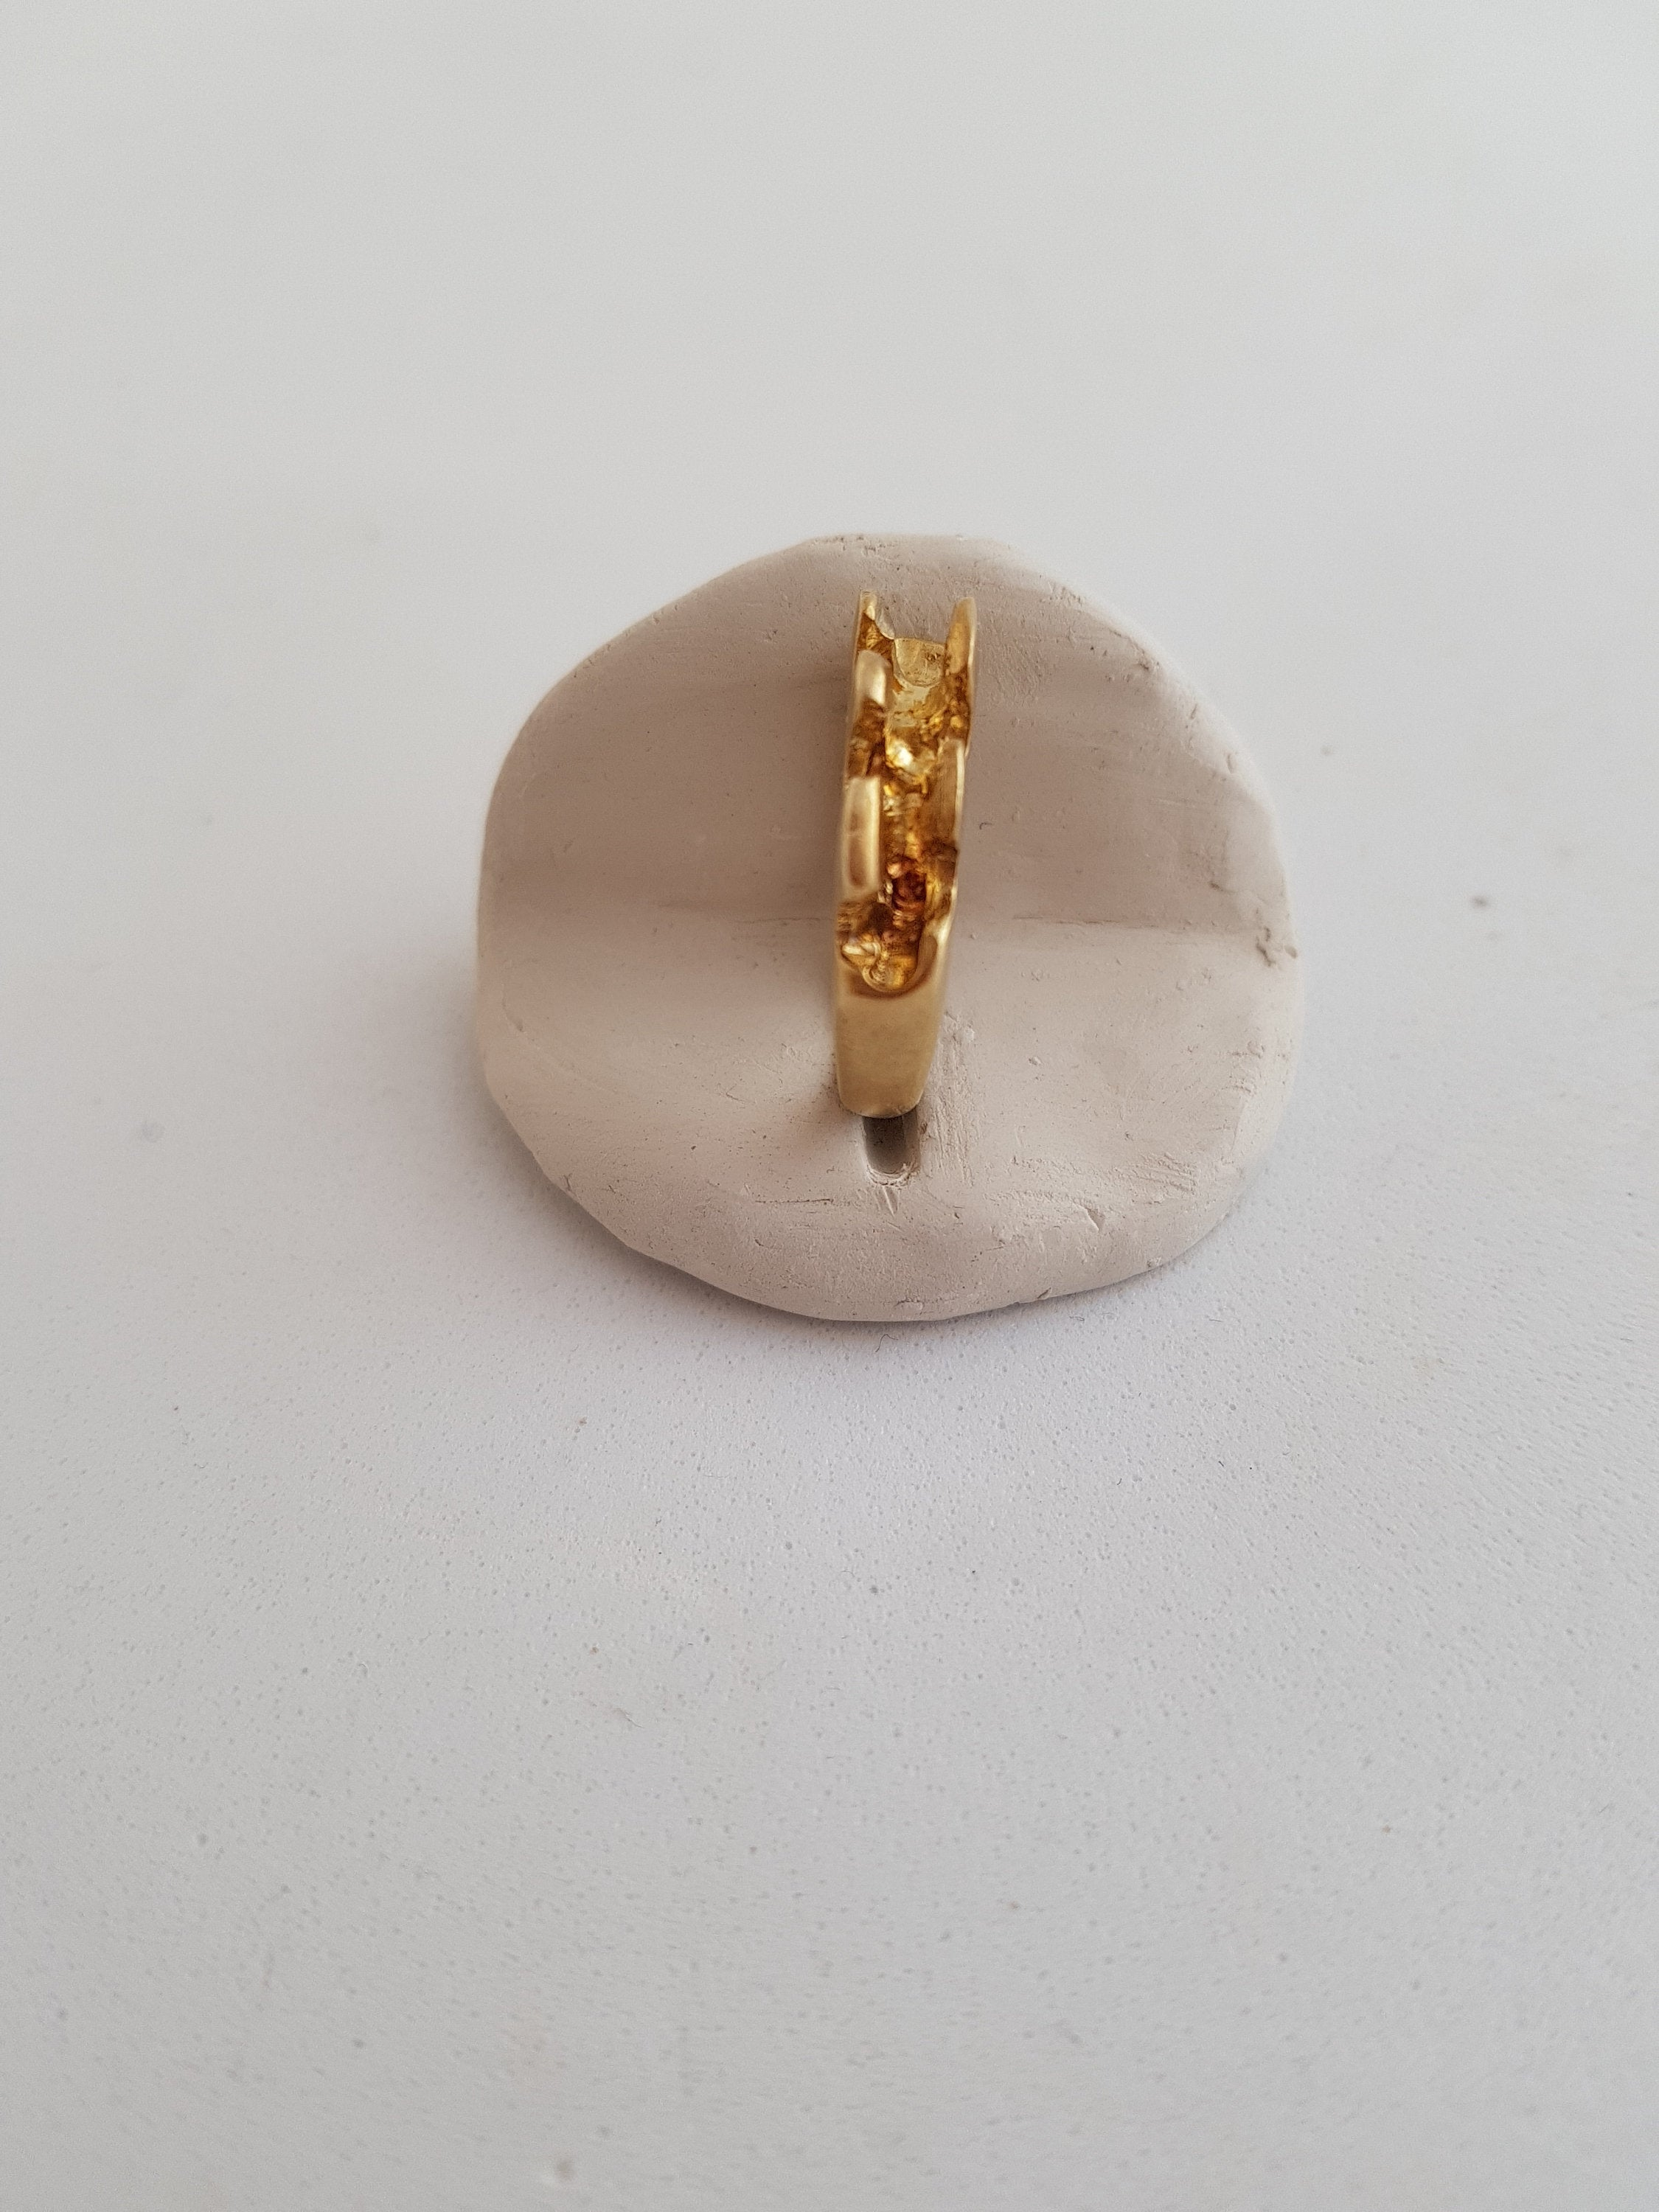 sculpted ring, original design ring, gold plated ring, comfy statement ring, seaweed ring, sculpted ring, double sided ring, false stacking